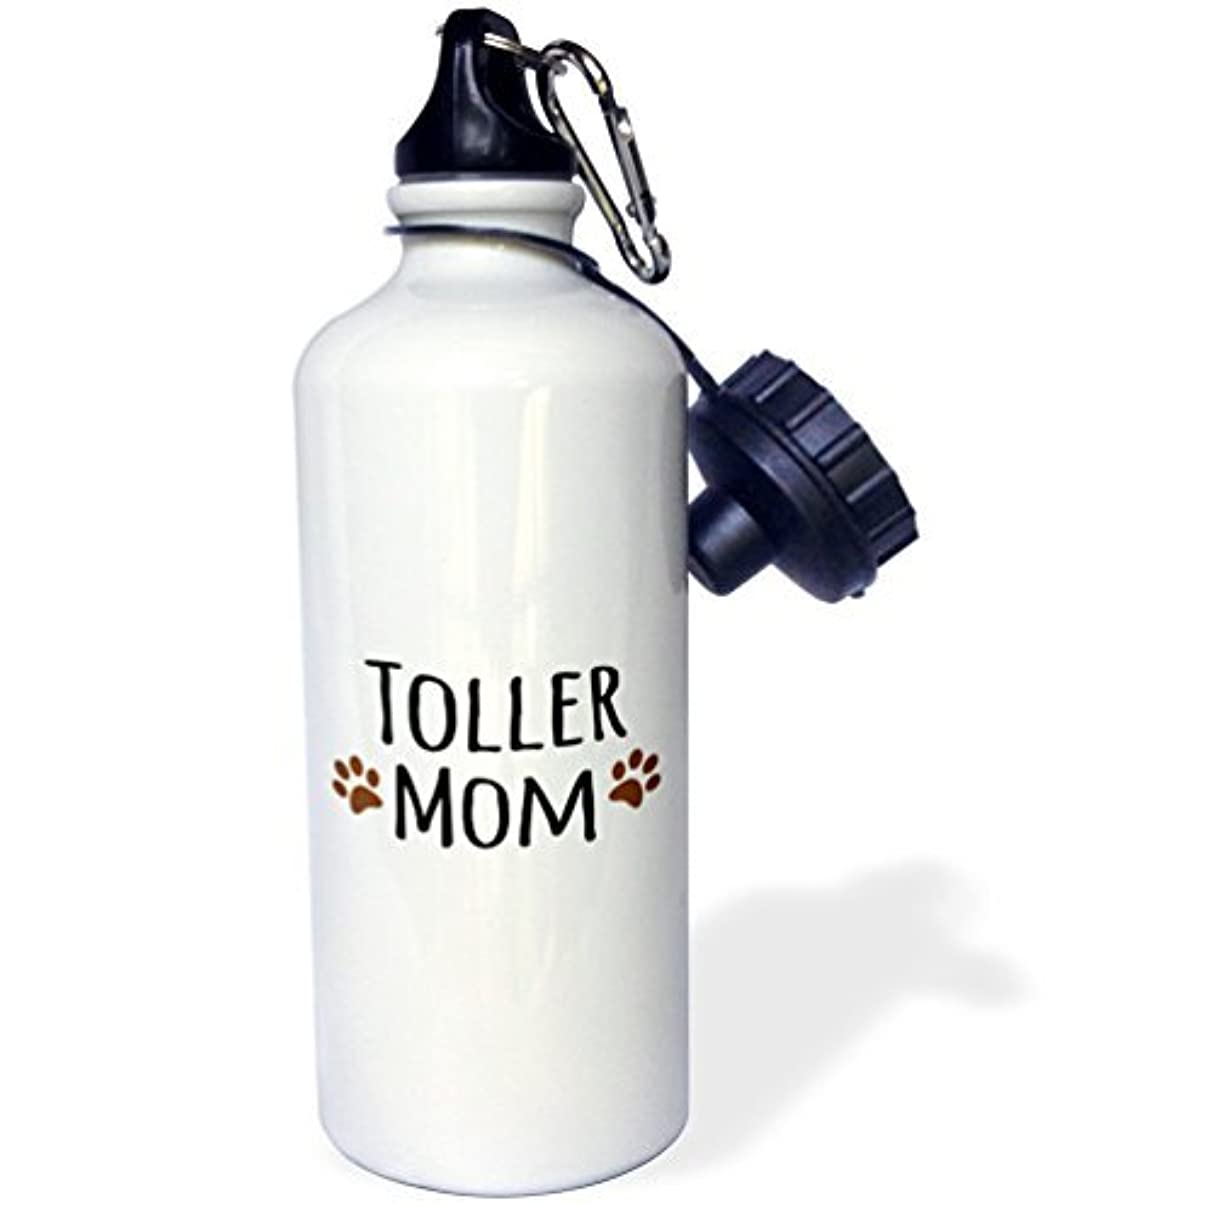 Toller Dog Mom Nova Scotia Duck Tolling Retriever Doggie By Breed Brown Paw Prints Doggy Mama Sports Water Bottle Stainless Steel Water Bottle for Women Men Kids